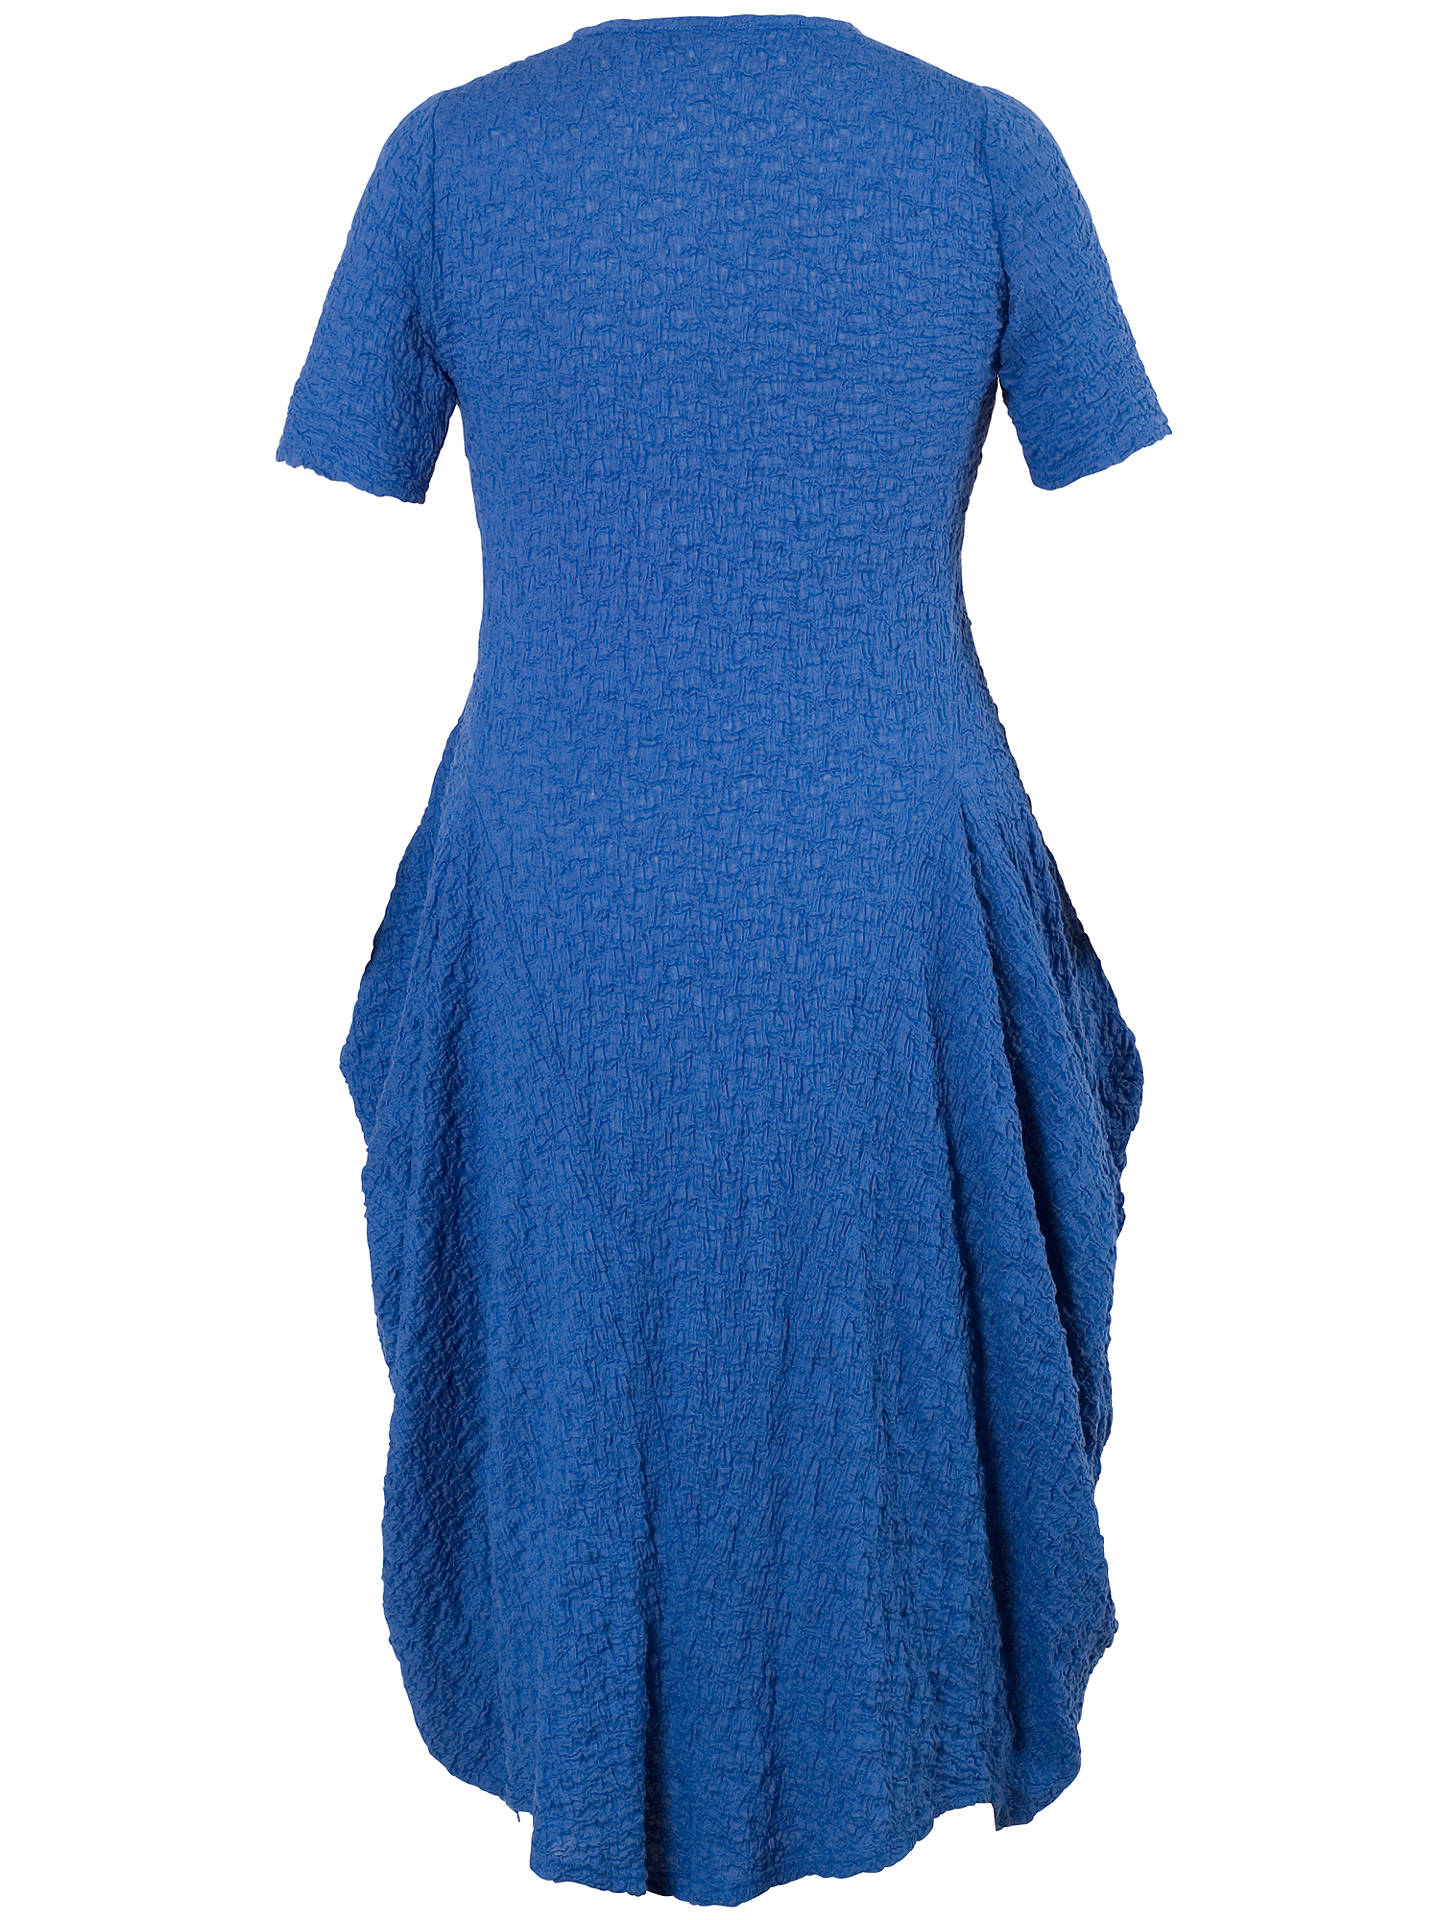 BuyChesca Bubble Drape Dress, Pompeii, 12-14 Online at johnlewis.com